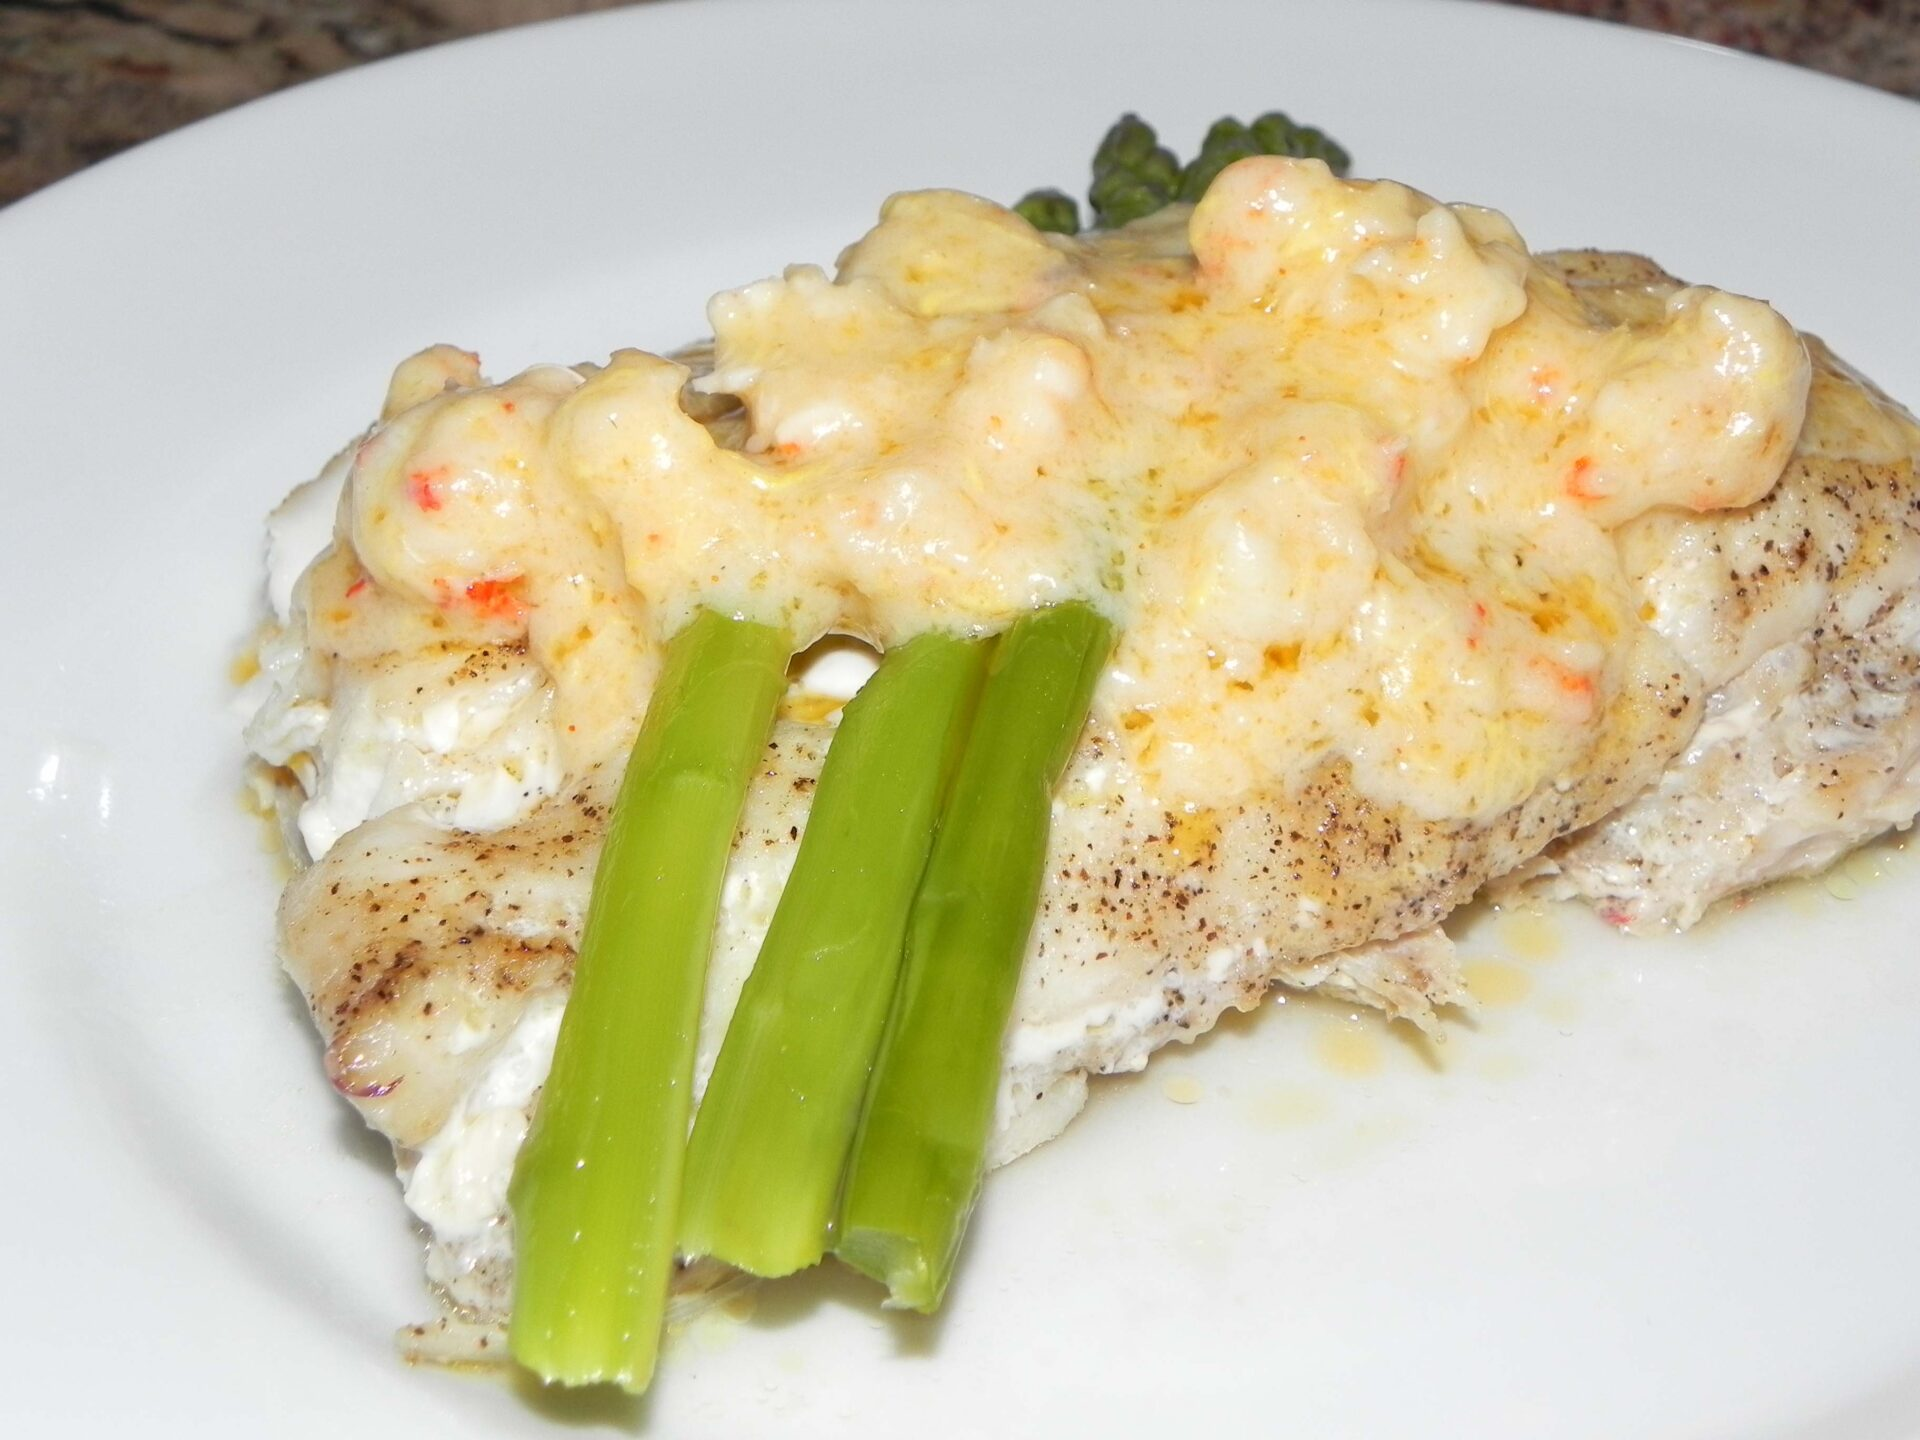 ... Southern: Baked Snapper With Crawfish Gravy and More - HottyToddy.com